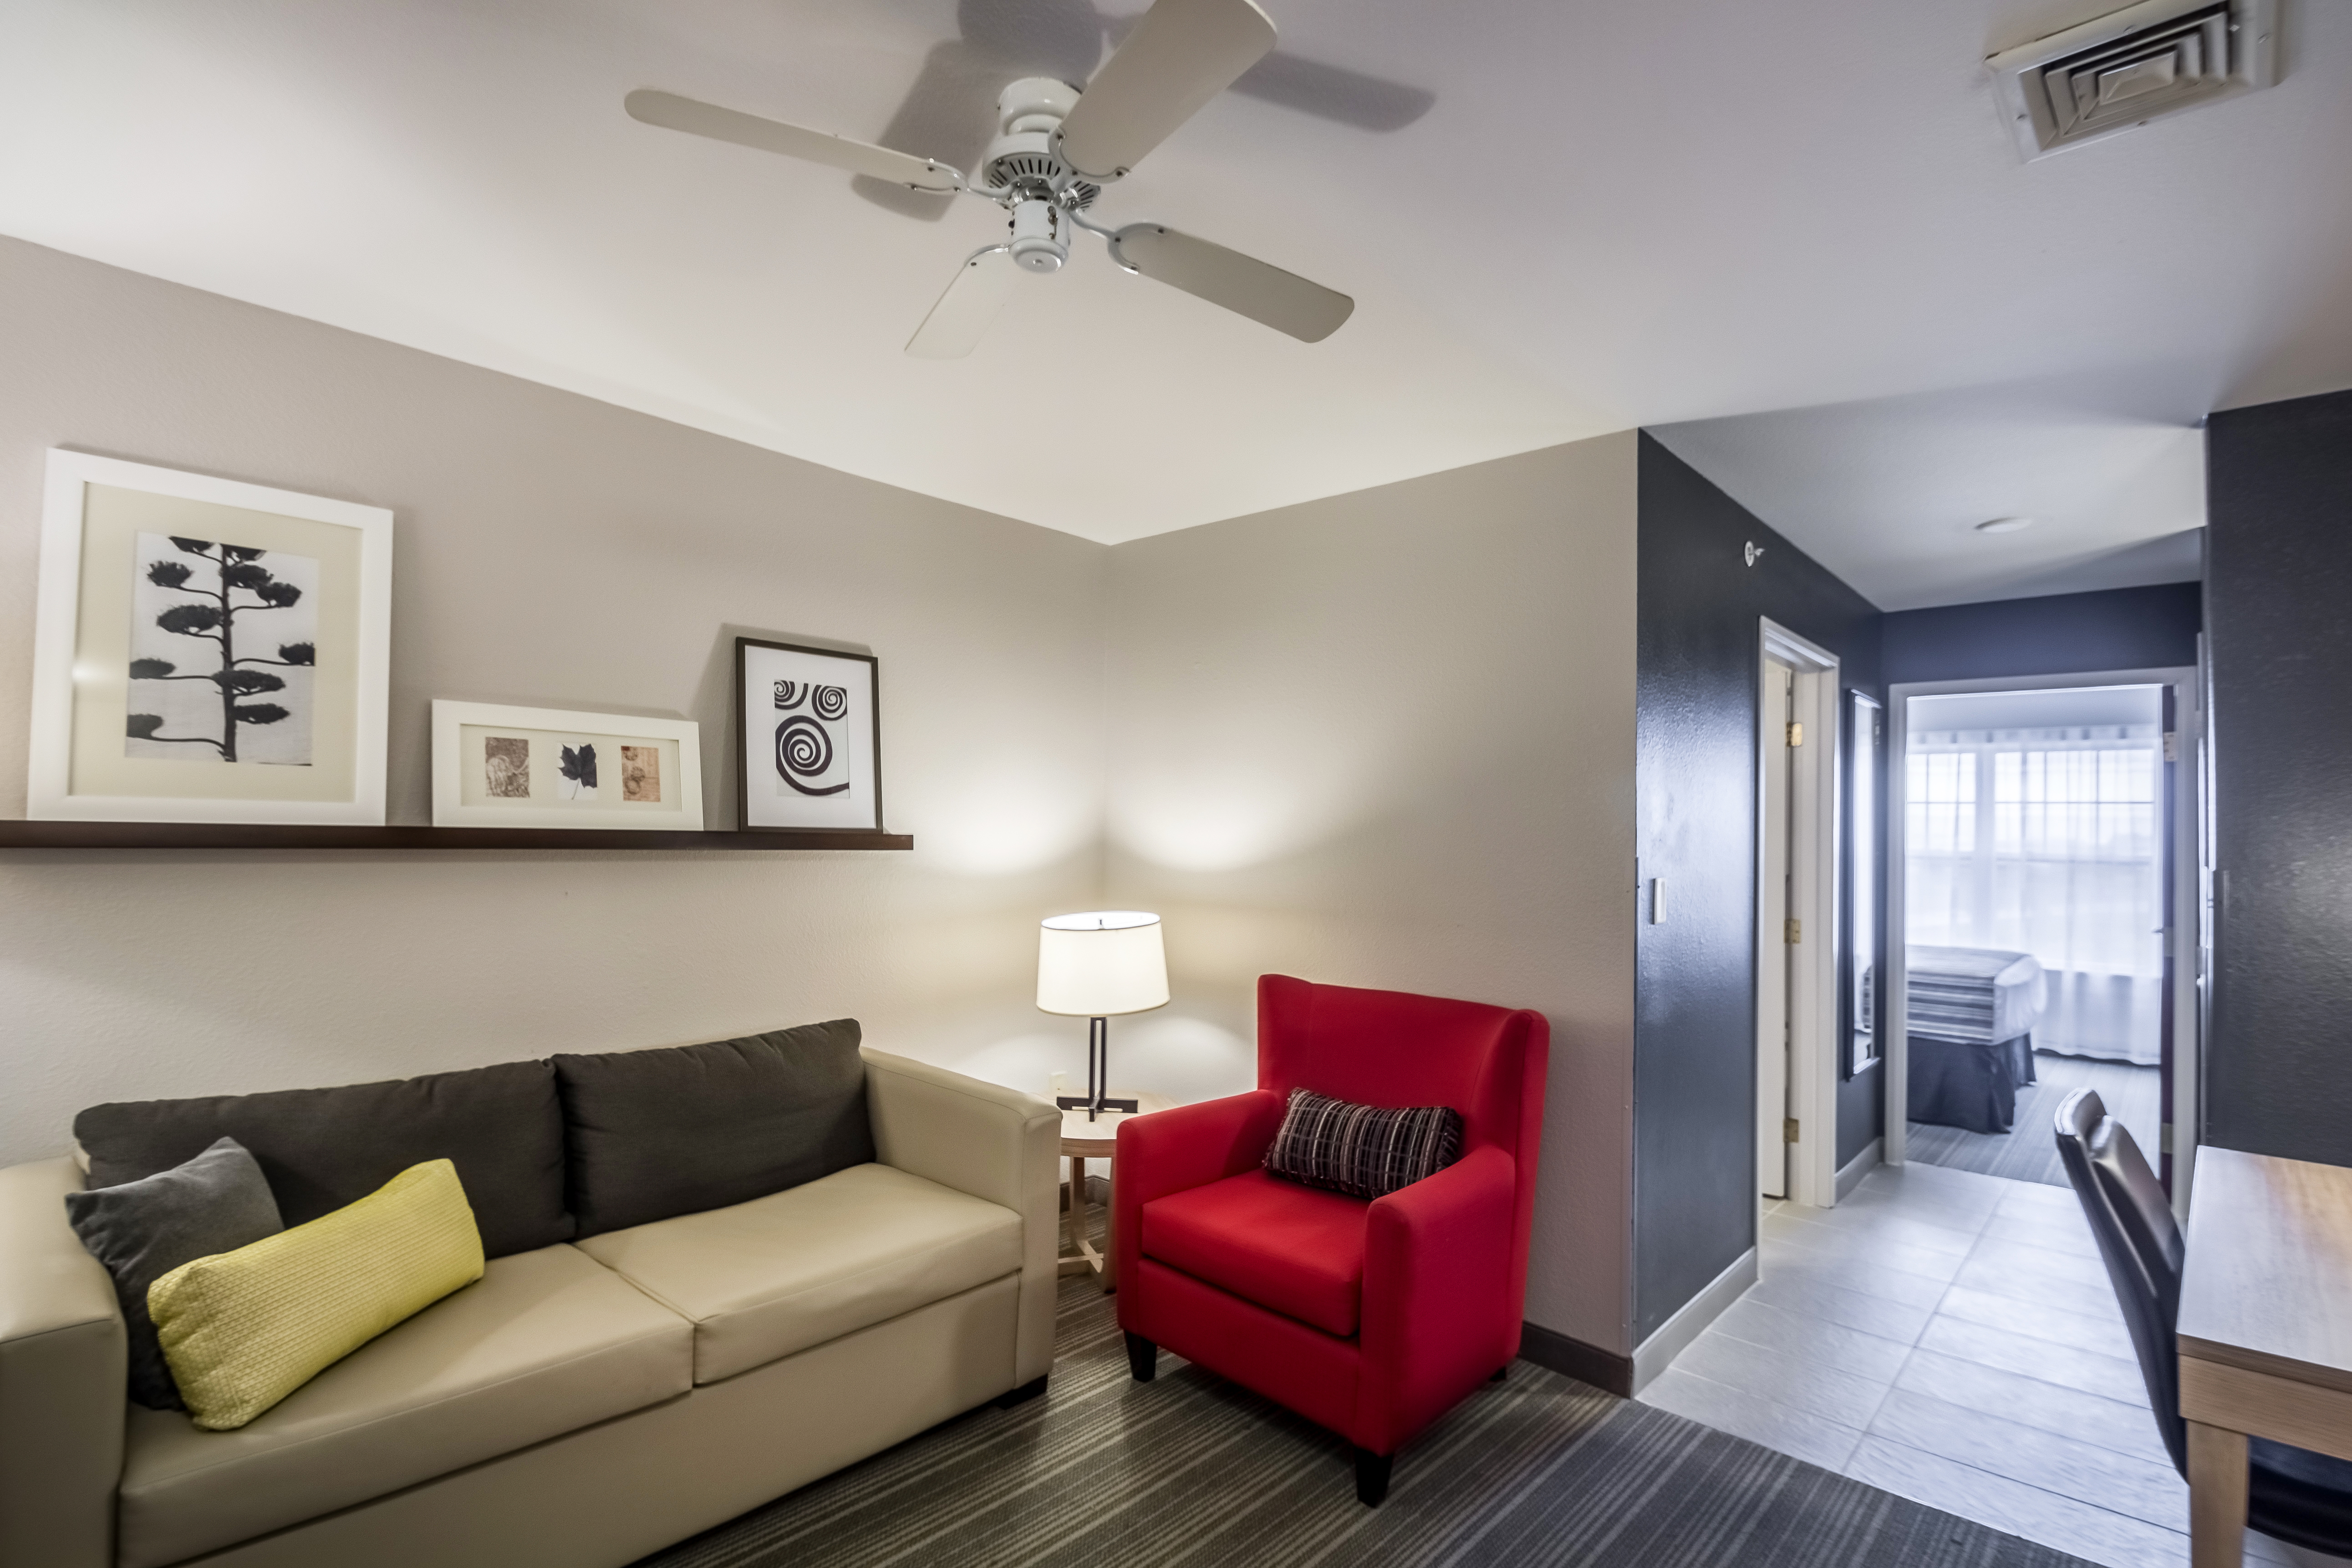 Country Inn & Suites by Radisson, Fond du Lac, WI image 3